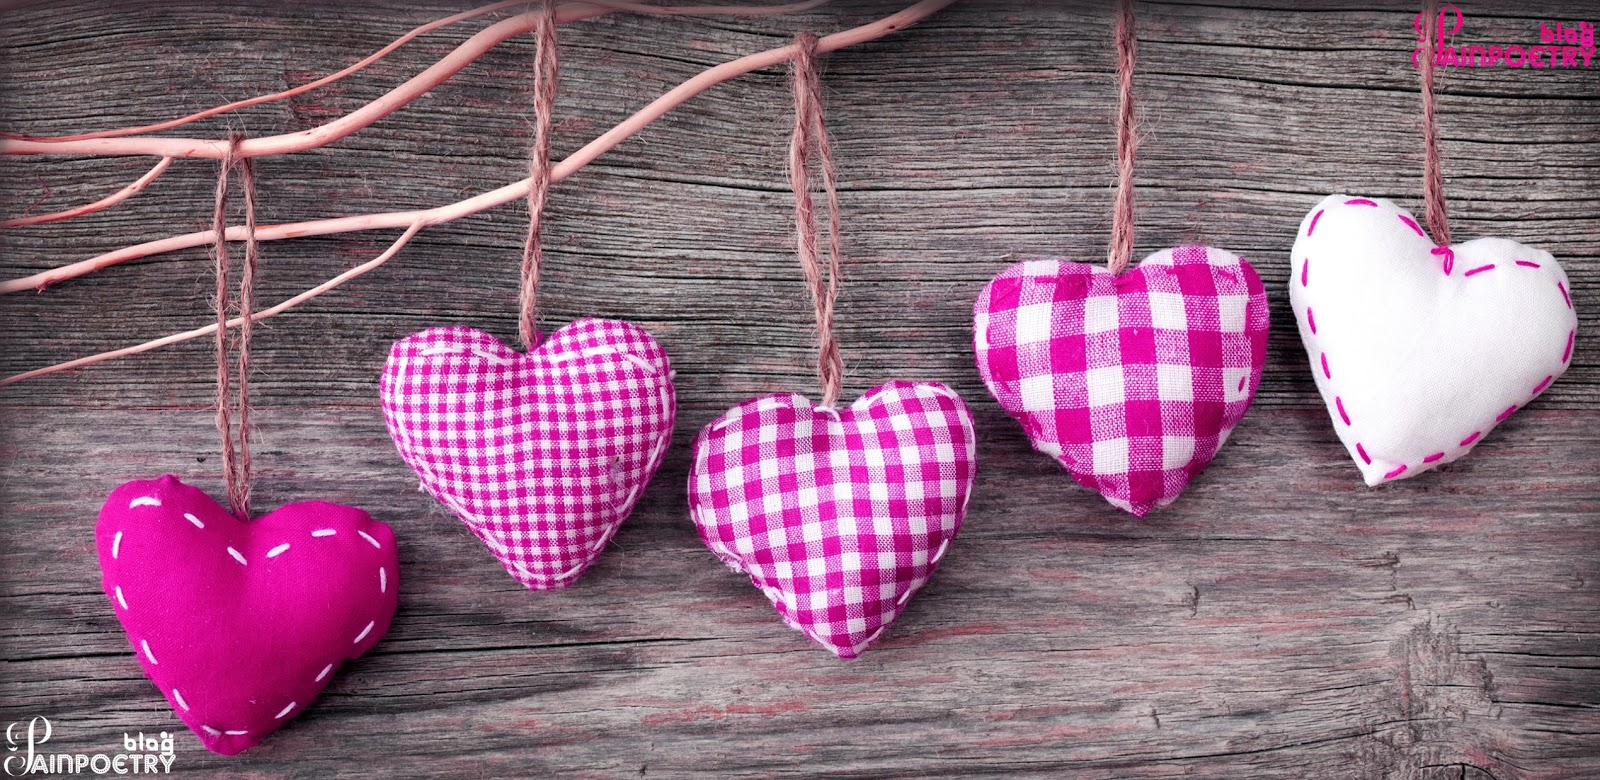 Five-Love-Hearts-Located-On-Wall-Image-HD